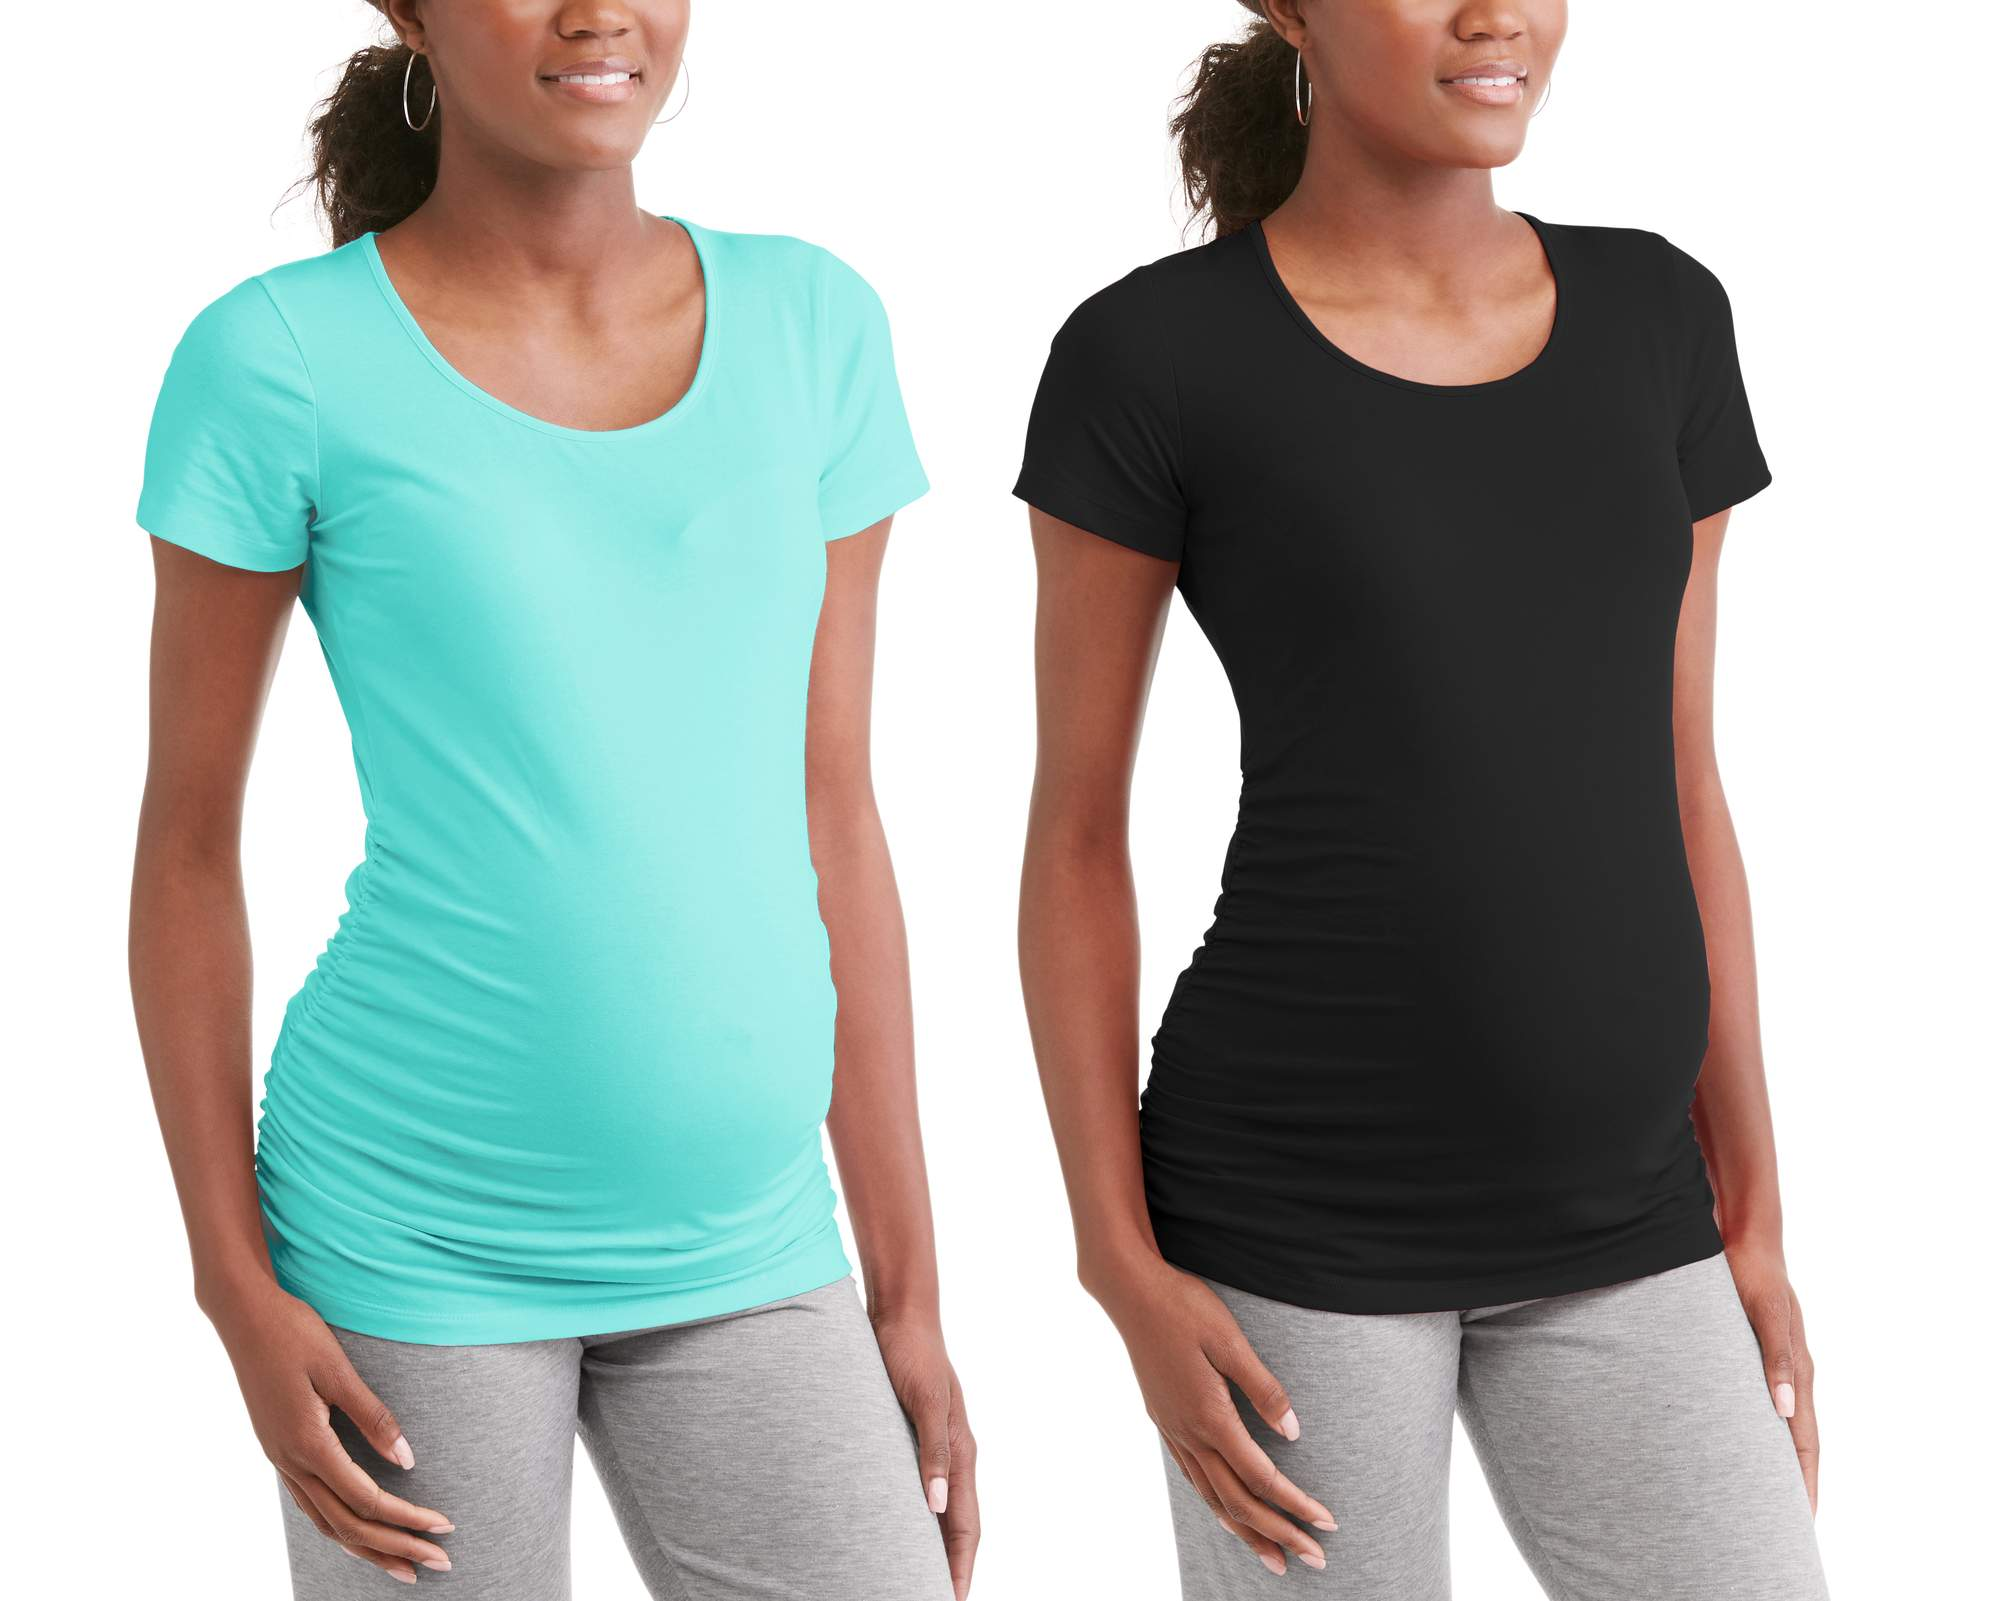 Maternity Scoop Neck Tee 2 Pack Available in Plus Sizes by I.E. Industries Fashsions, Inc